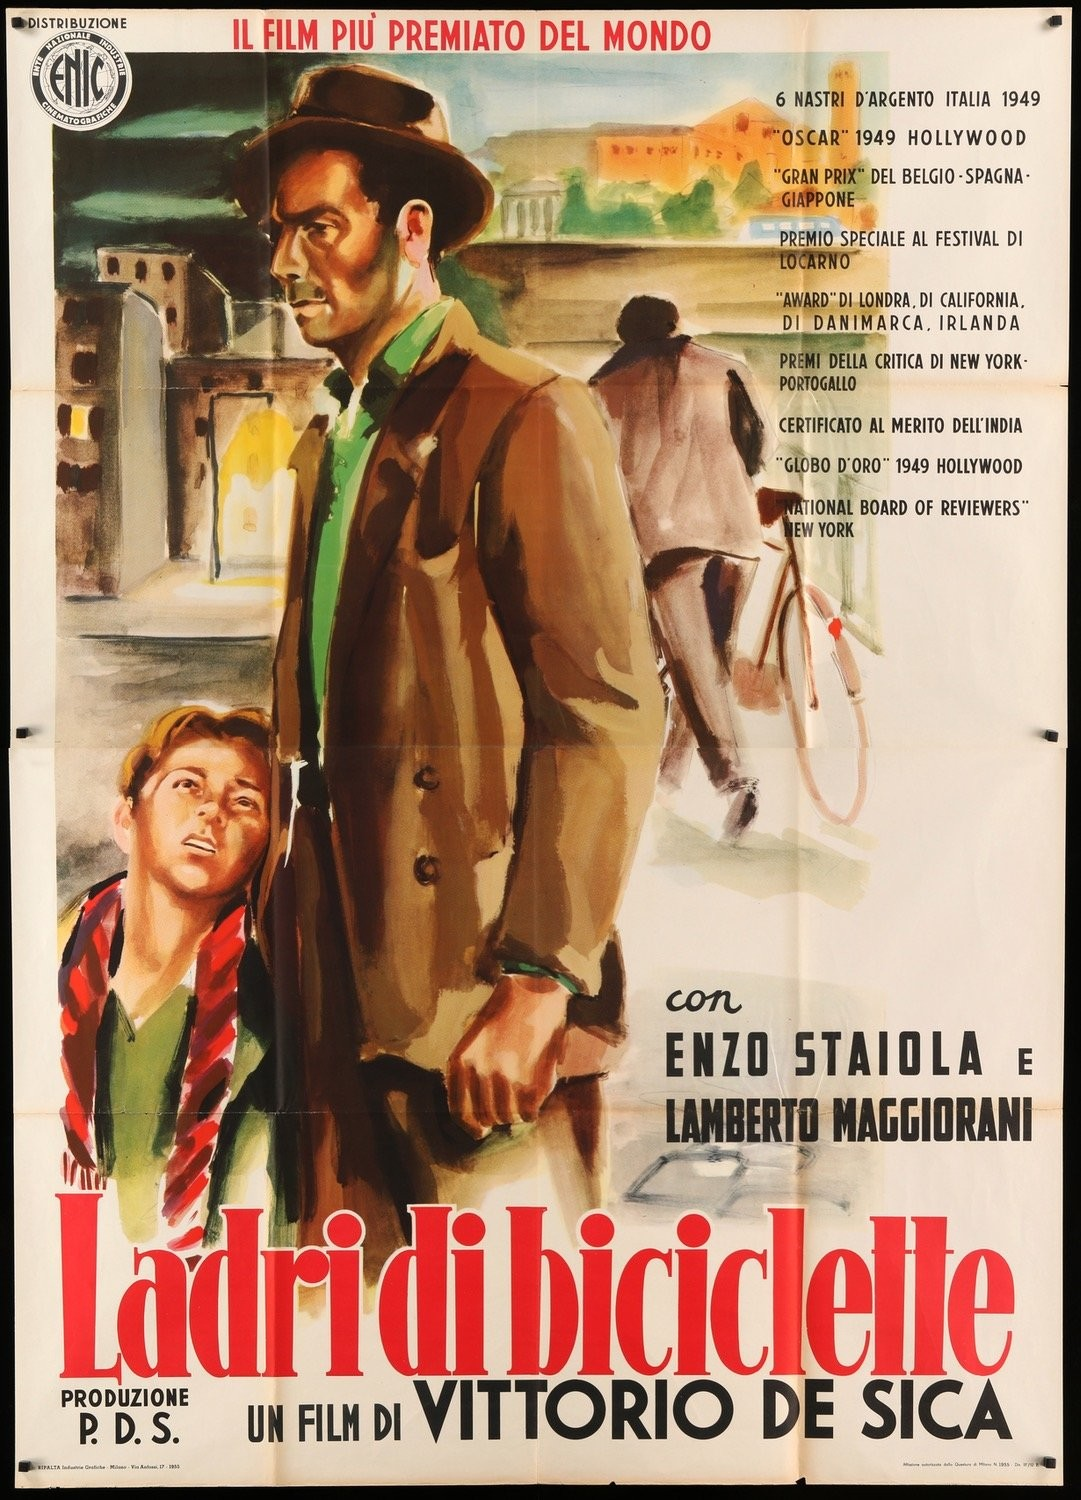 BICYCLE THIEVES [Ladri di biciclette]